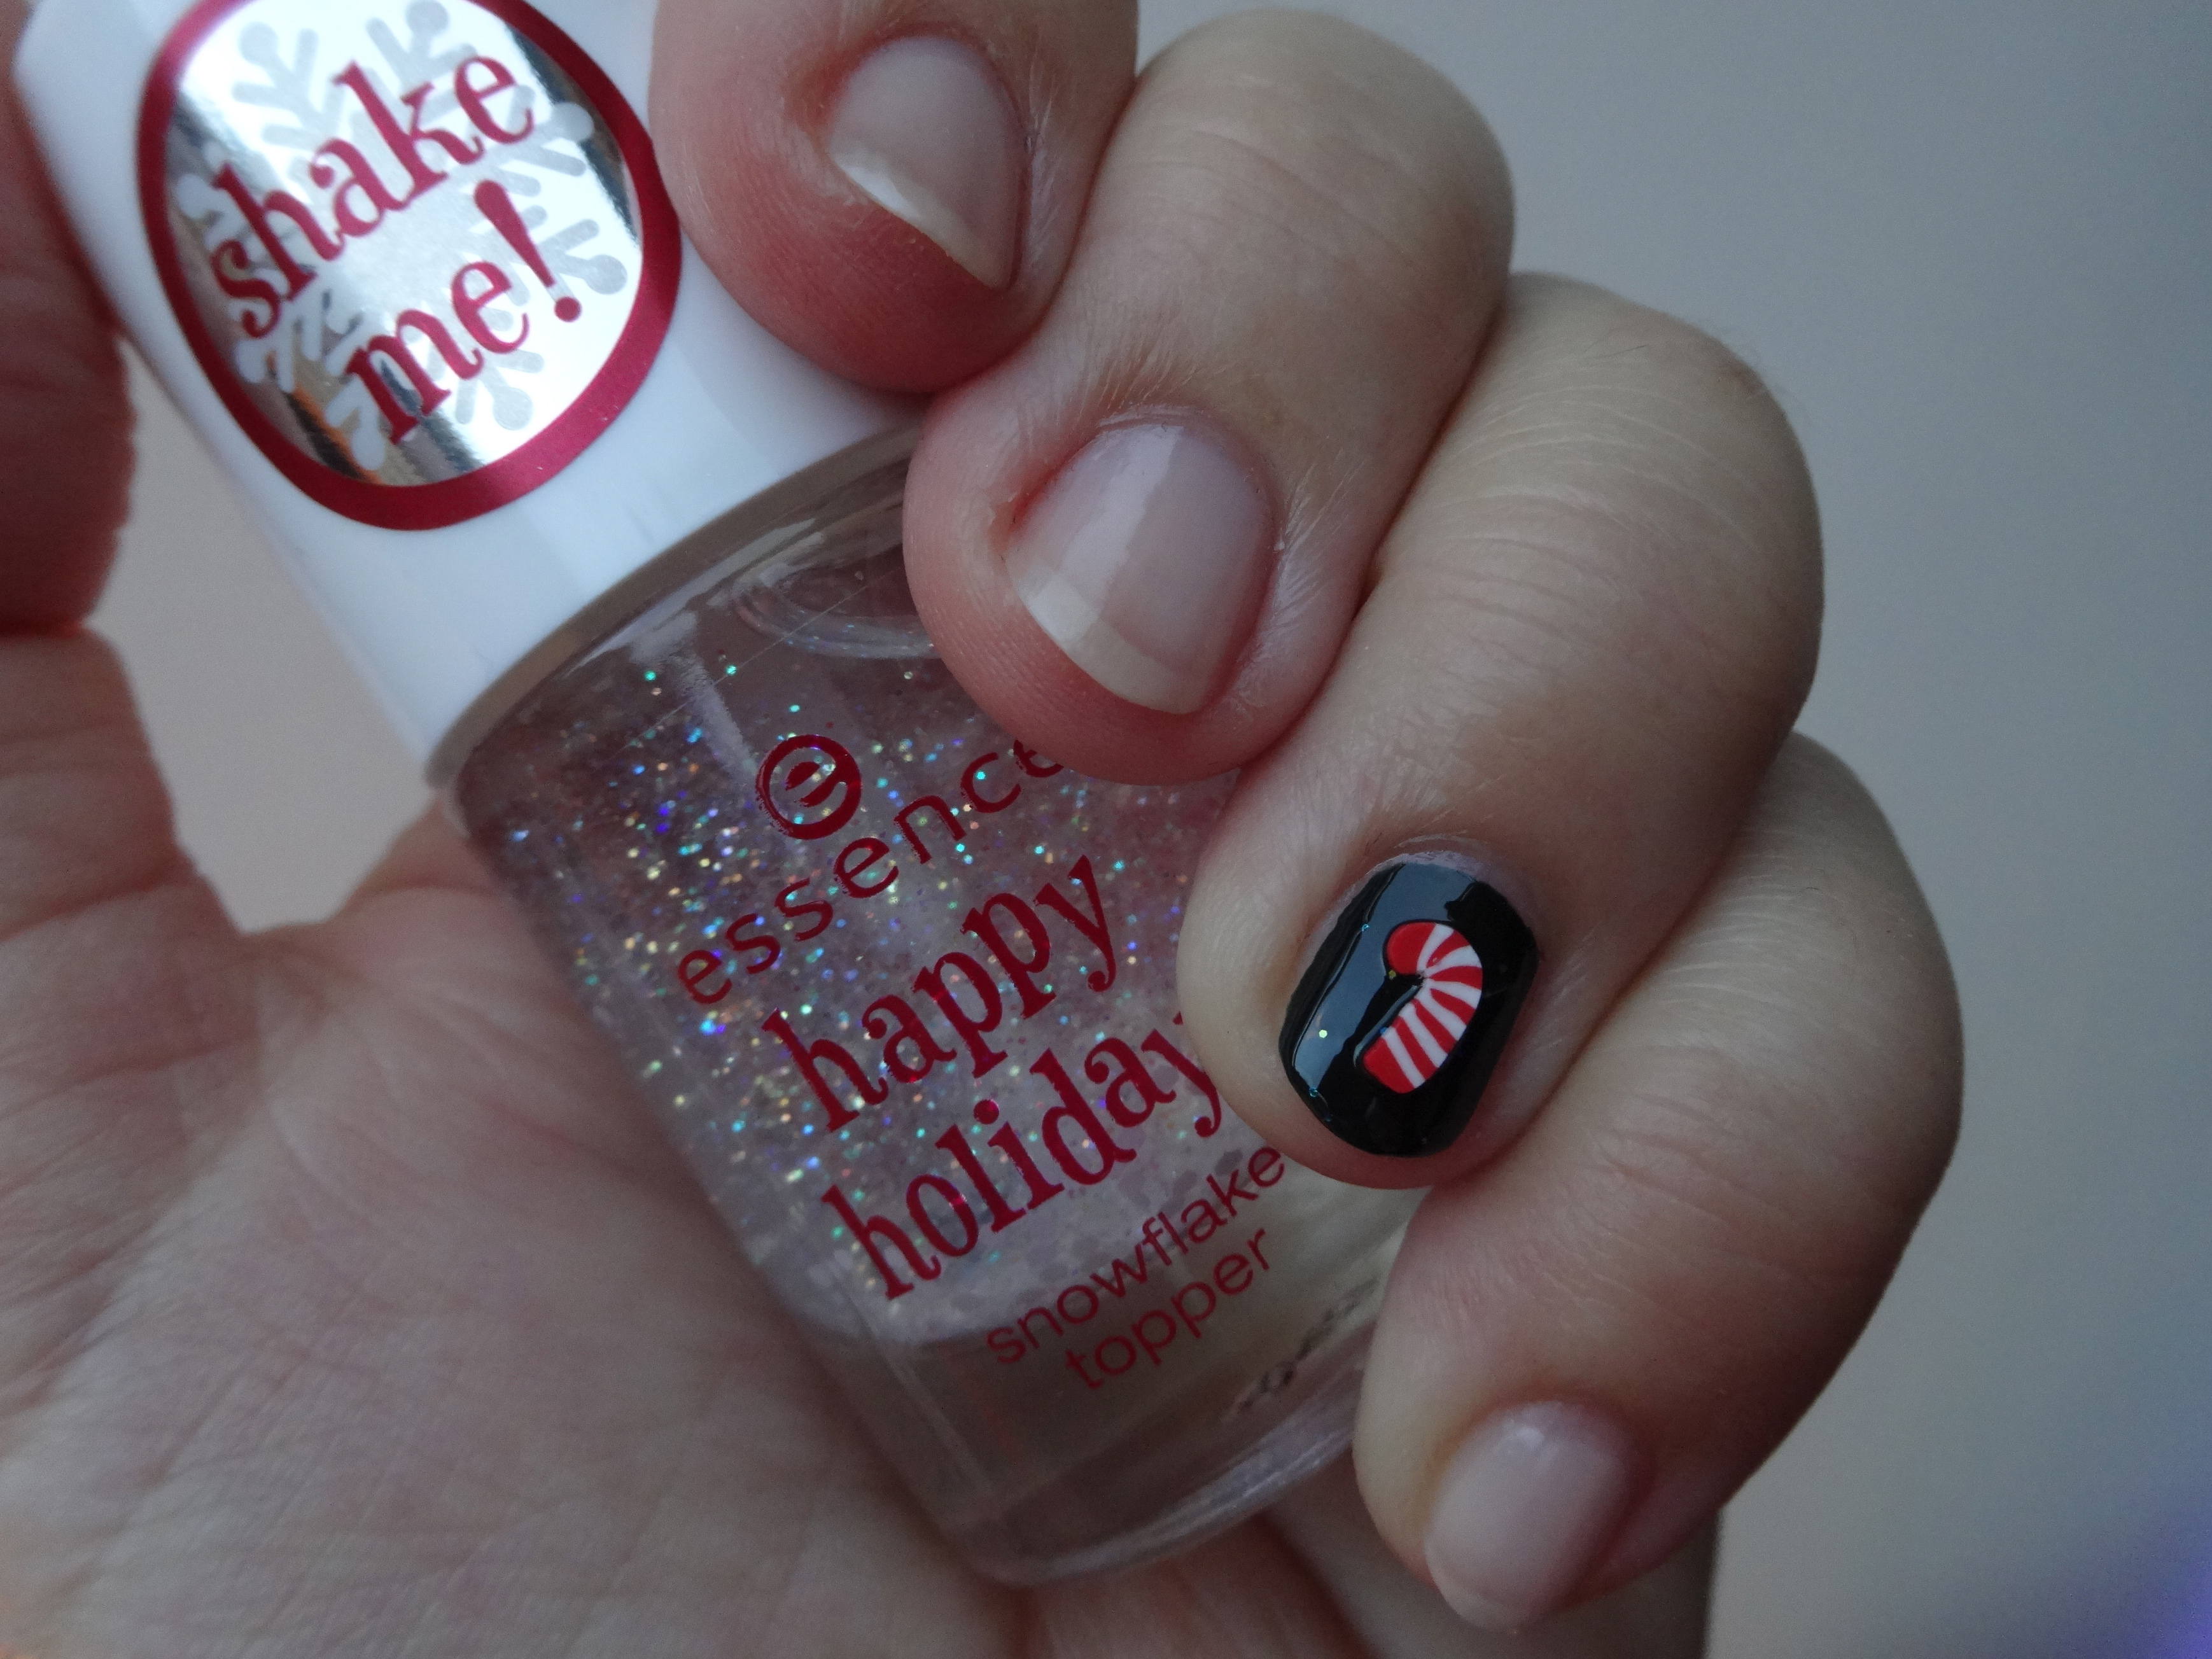 essence 160 deep sea, baby, happy holidays sugar cane / Zuckerstange & snow flake topper